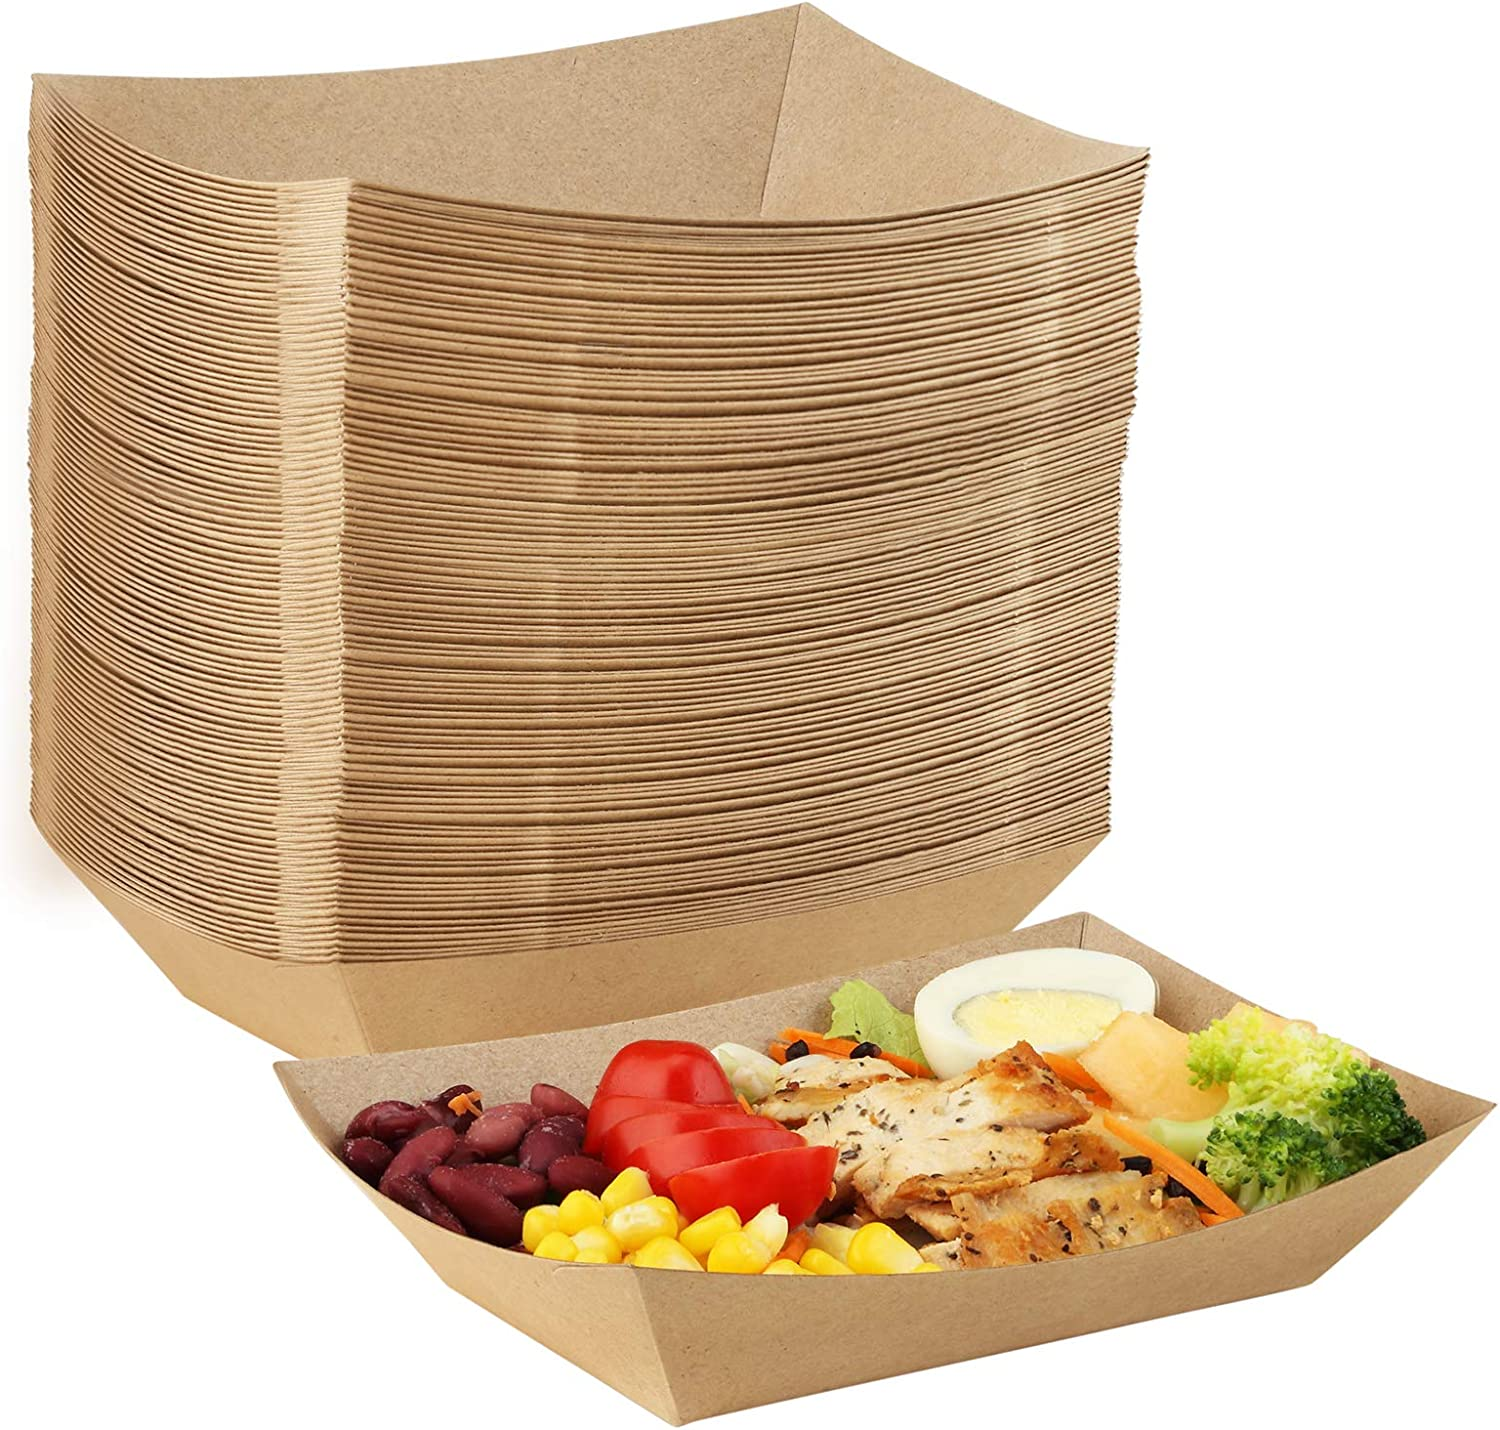 Eupako Paper Food Trays 3 Lb Capacity Disposable Kraft Paper Food Serving Tray Grease Resistant Boat (Brown, 100 Pack)